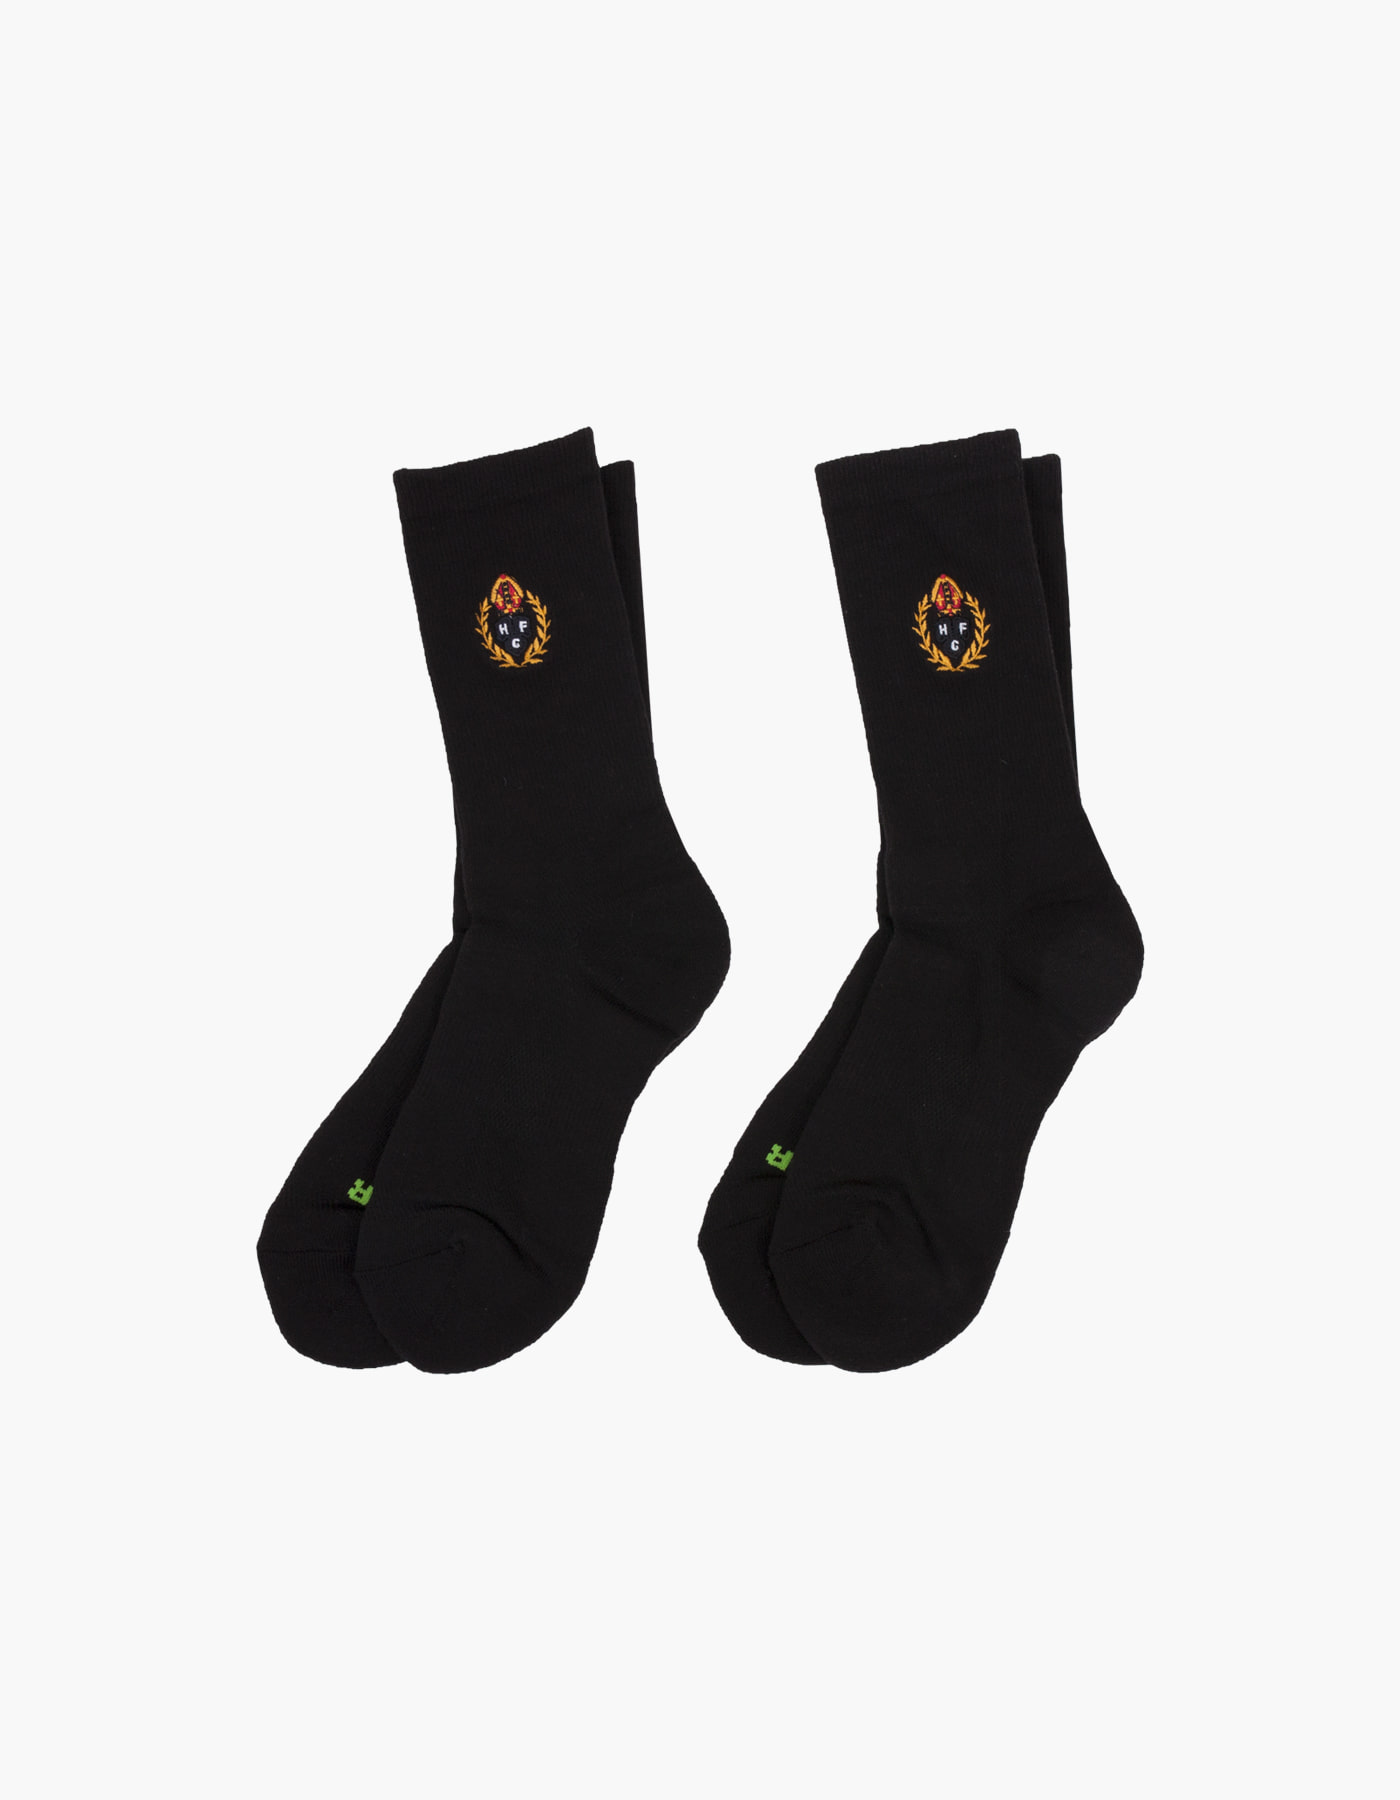 HFC CREST 5 FUNCTION SOCKS (2-PACK) / BLACK